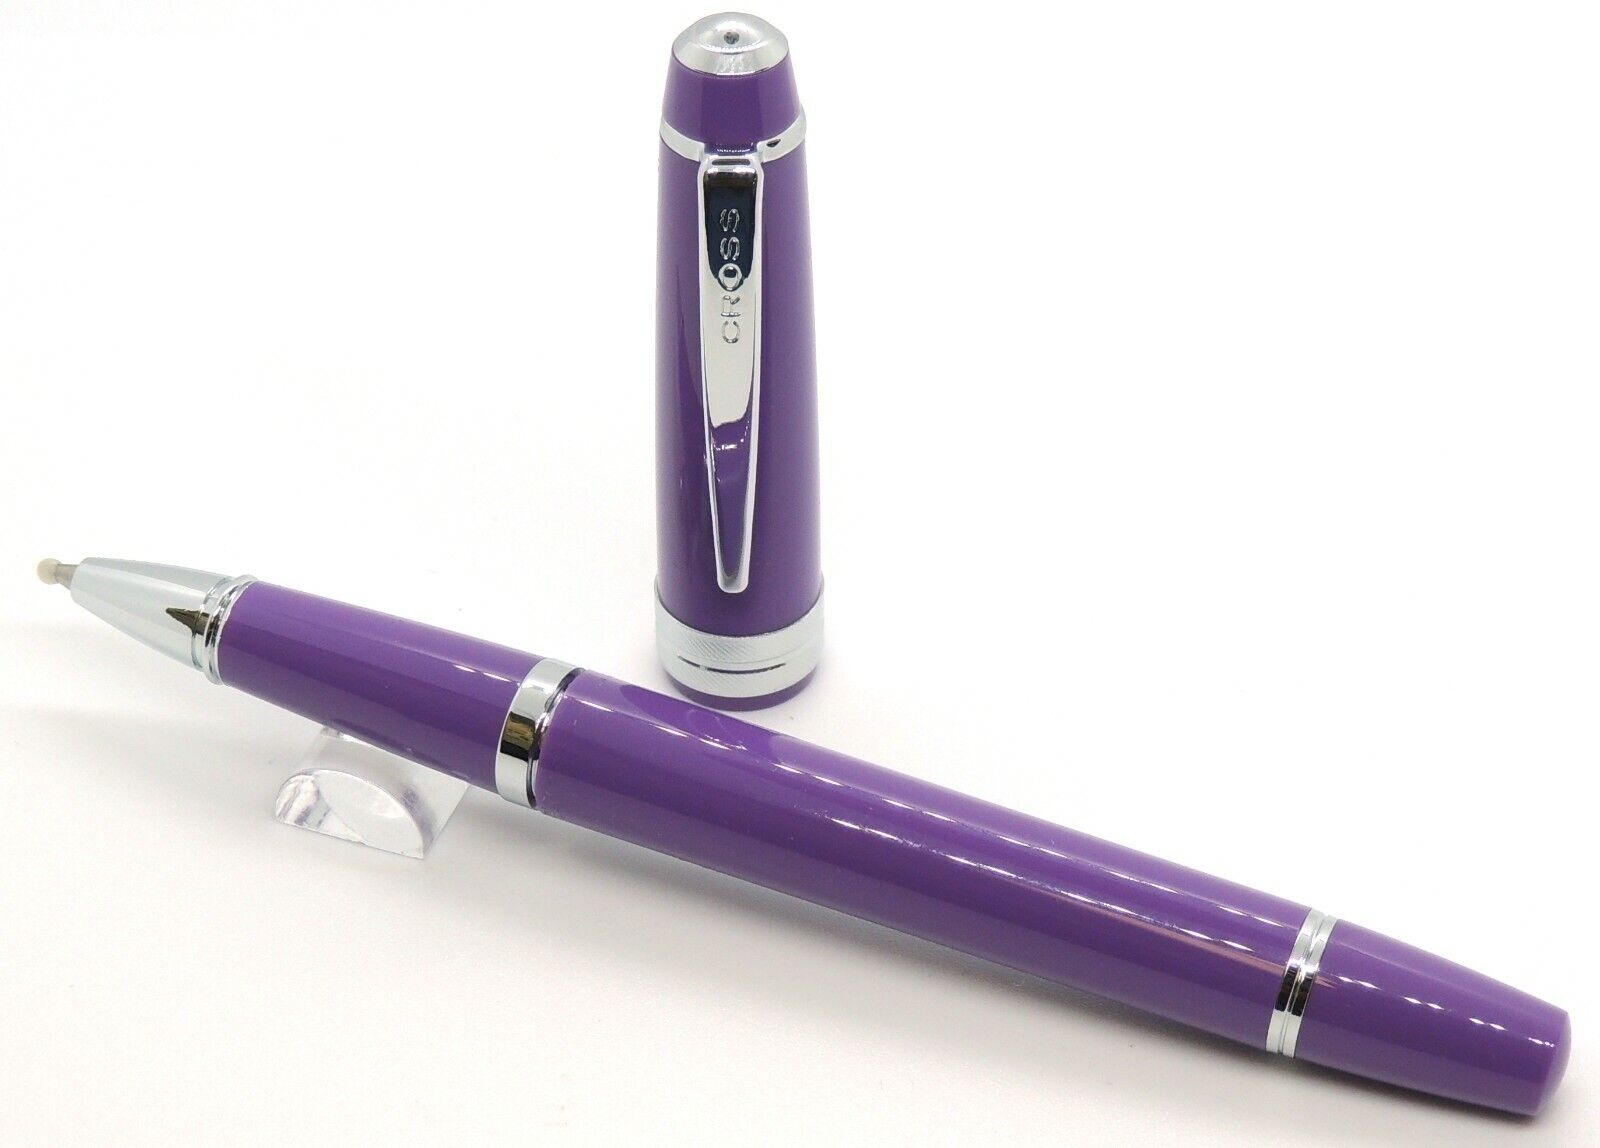 Cross Bailey Light Rollerball Pen, Polished Purple & Gold, New In Box Collectibles